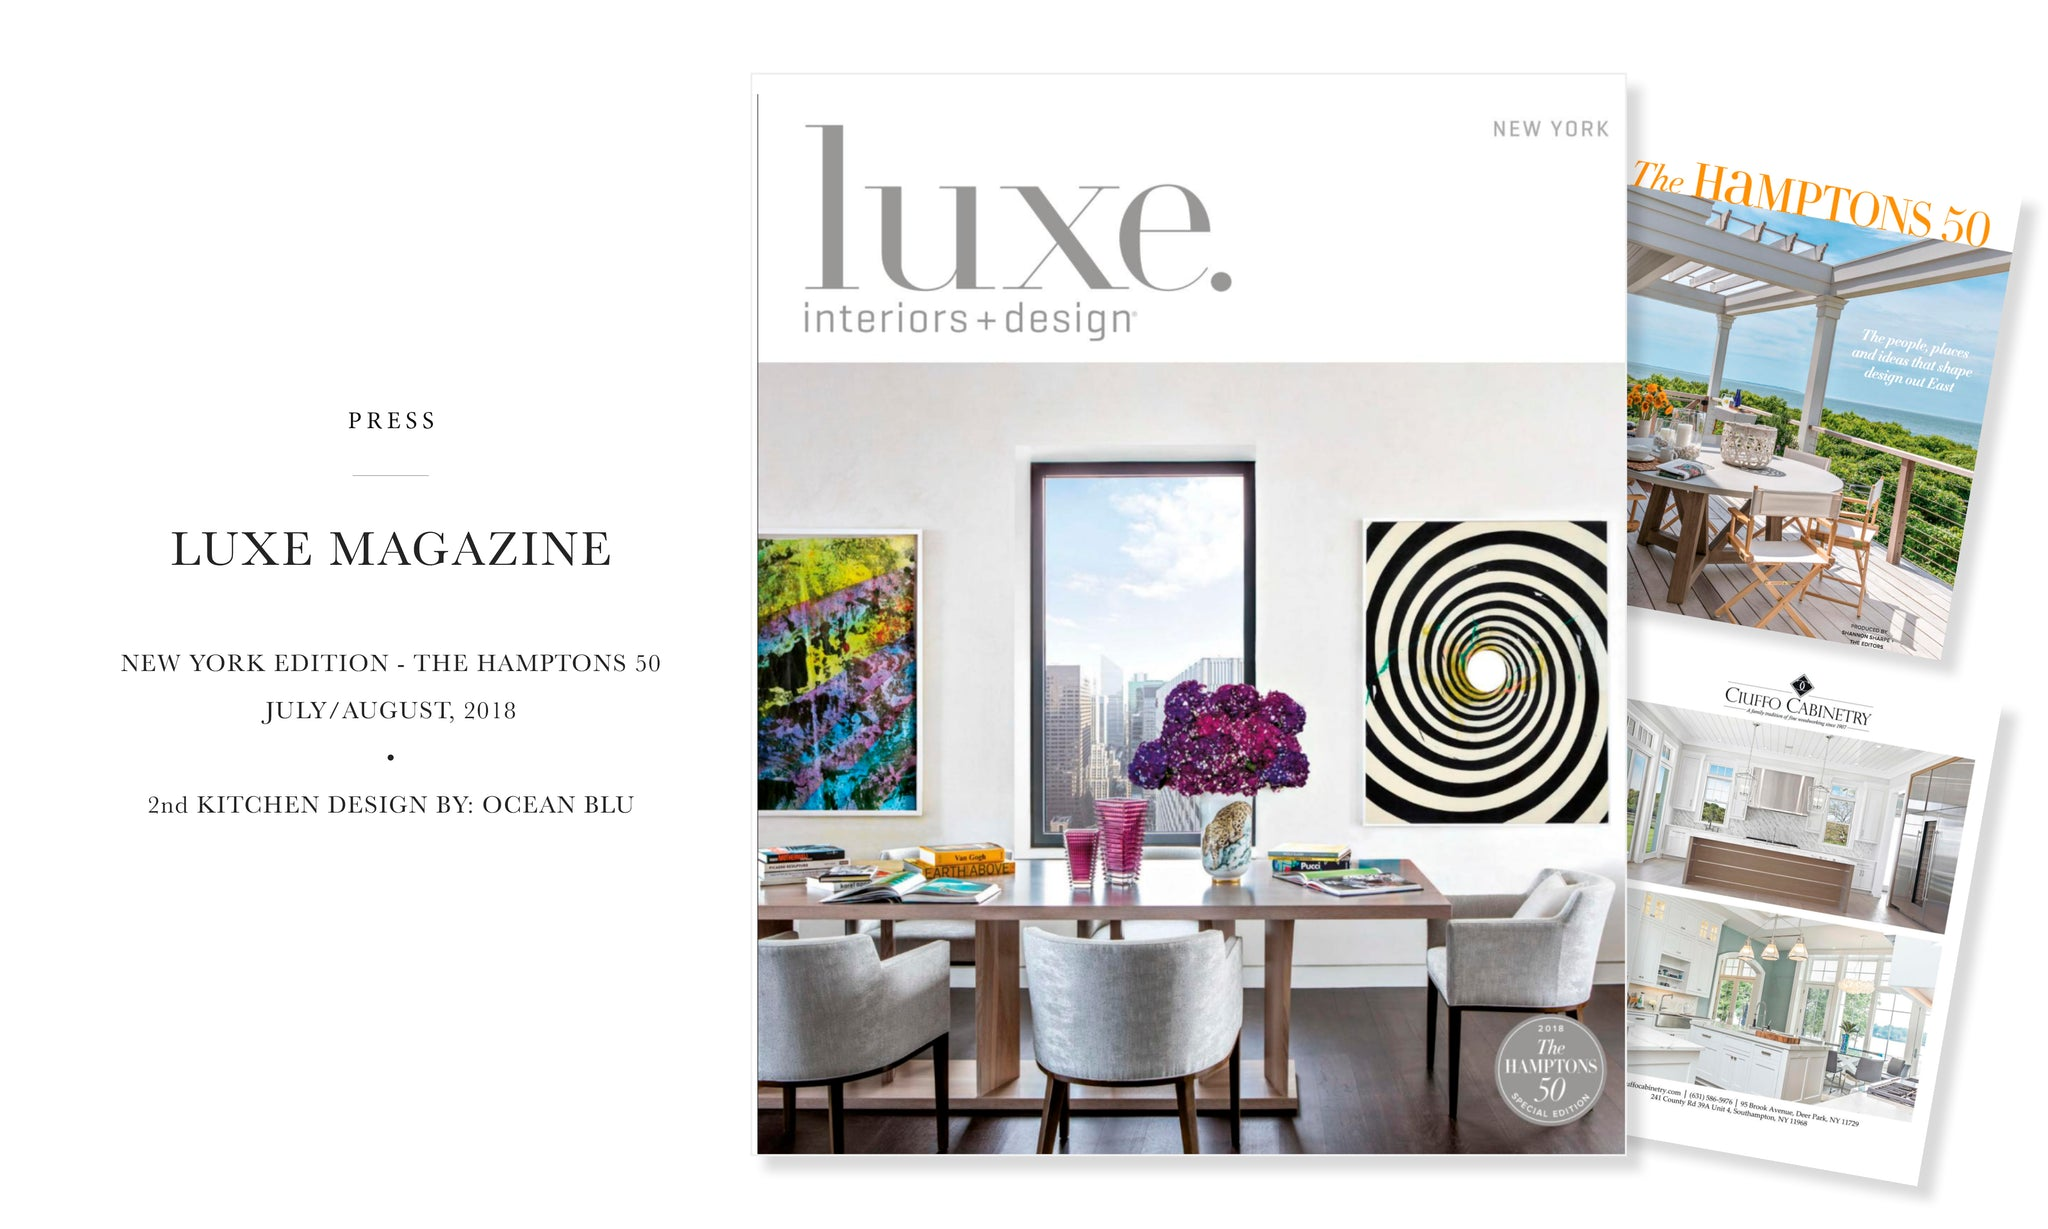 Ocean Blu Designs - Long Island's Best Modern Coastal Interior Design Services - Featured in Luxe Magazine, New York Edition, Hamptons 50